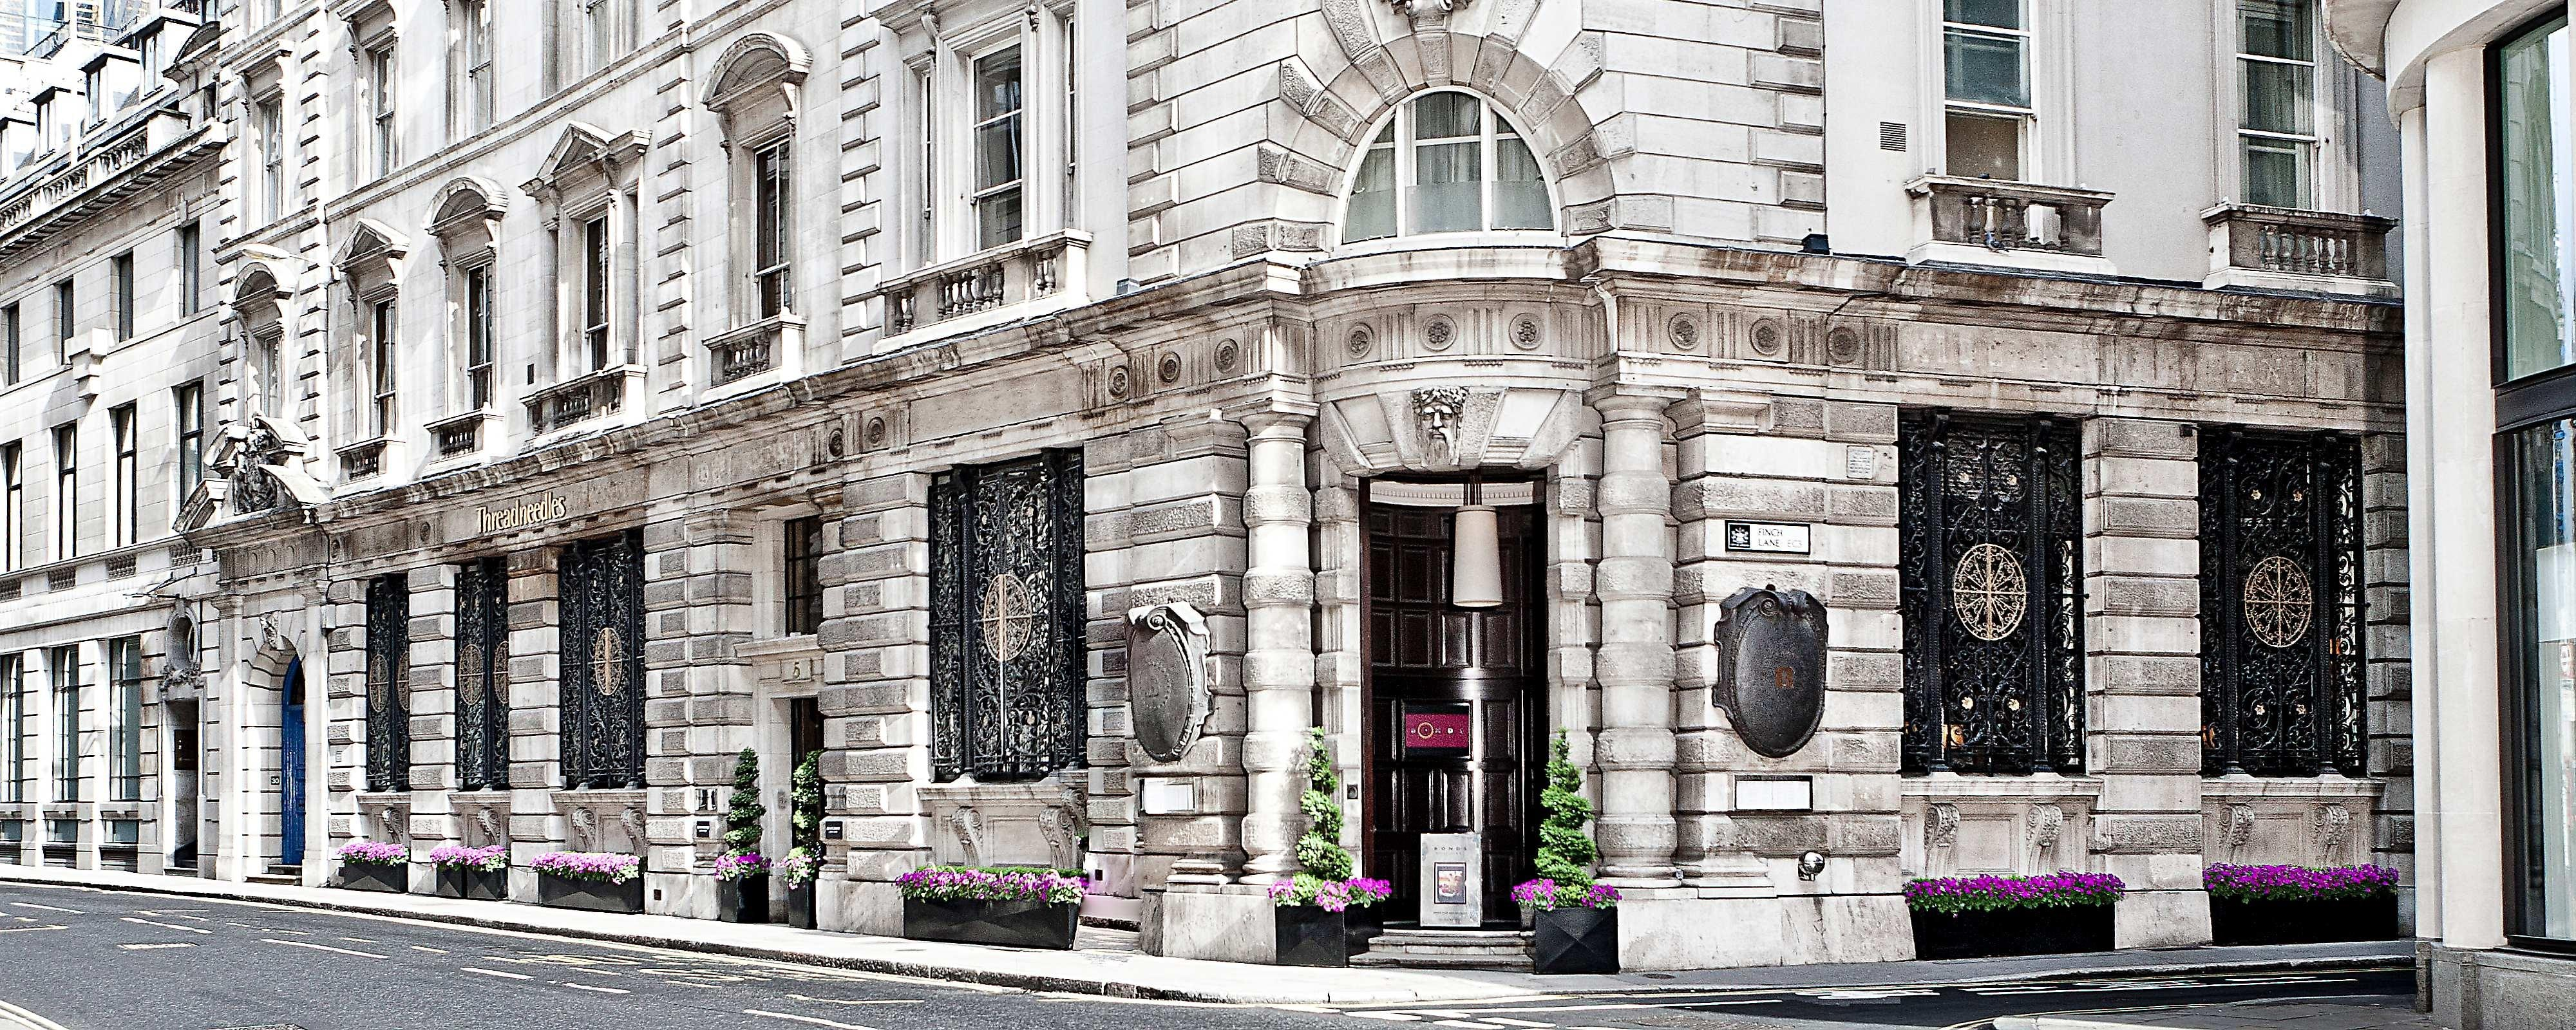 London boutique hotel exterior